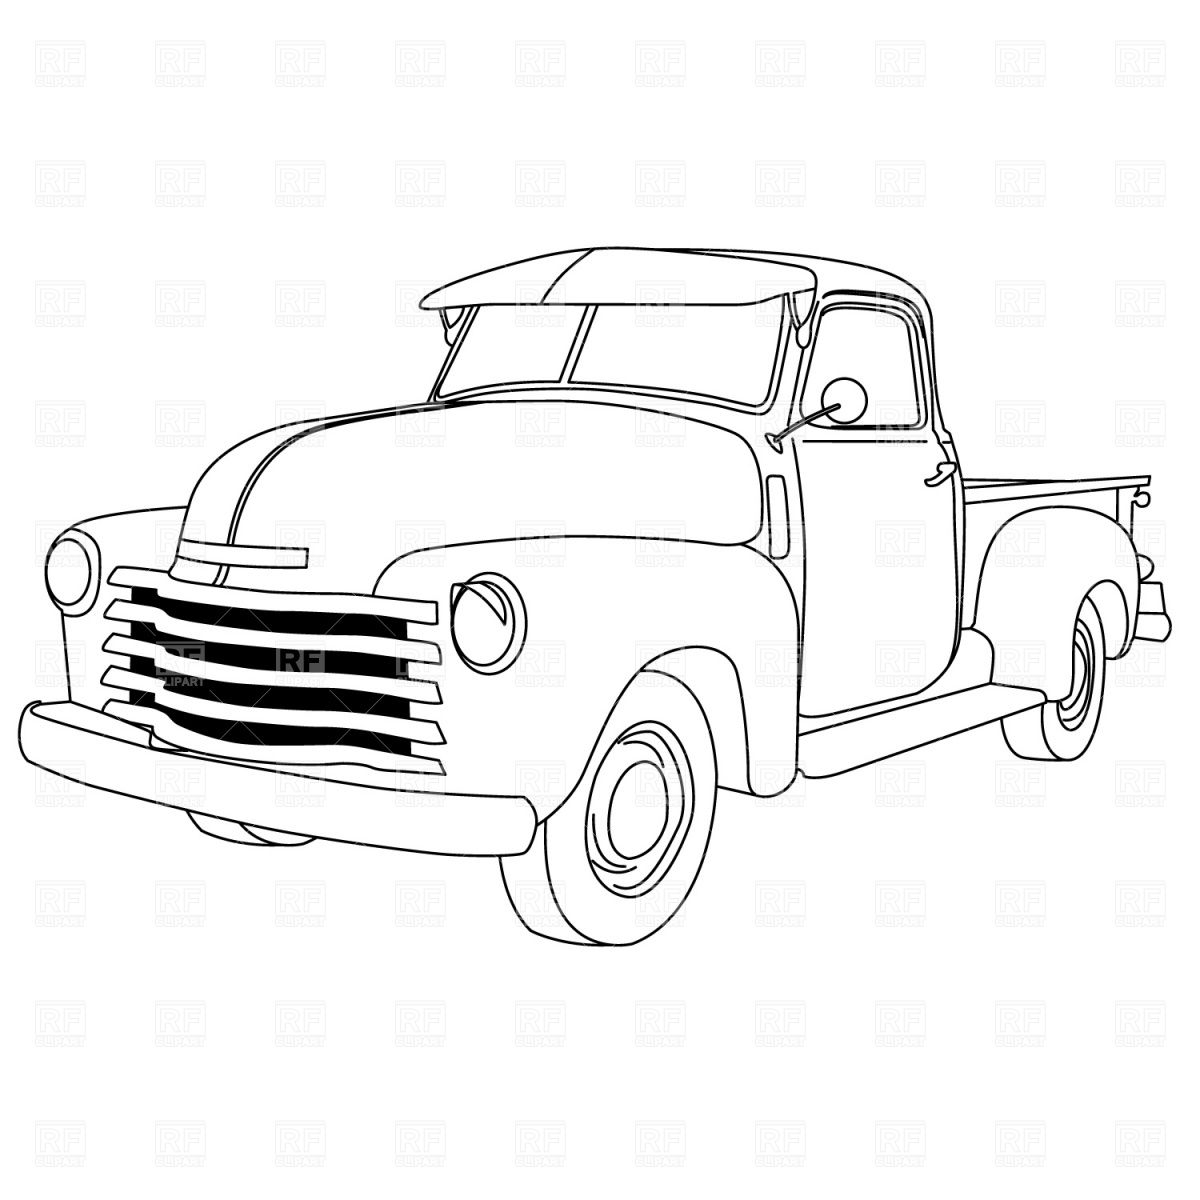 ford truck coloring pages Download-Classic Car Vector Art Old american pick up truck Truck Coloring Pages Coloring Books 4-f